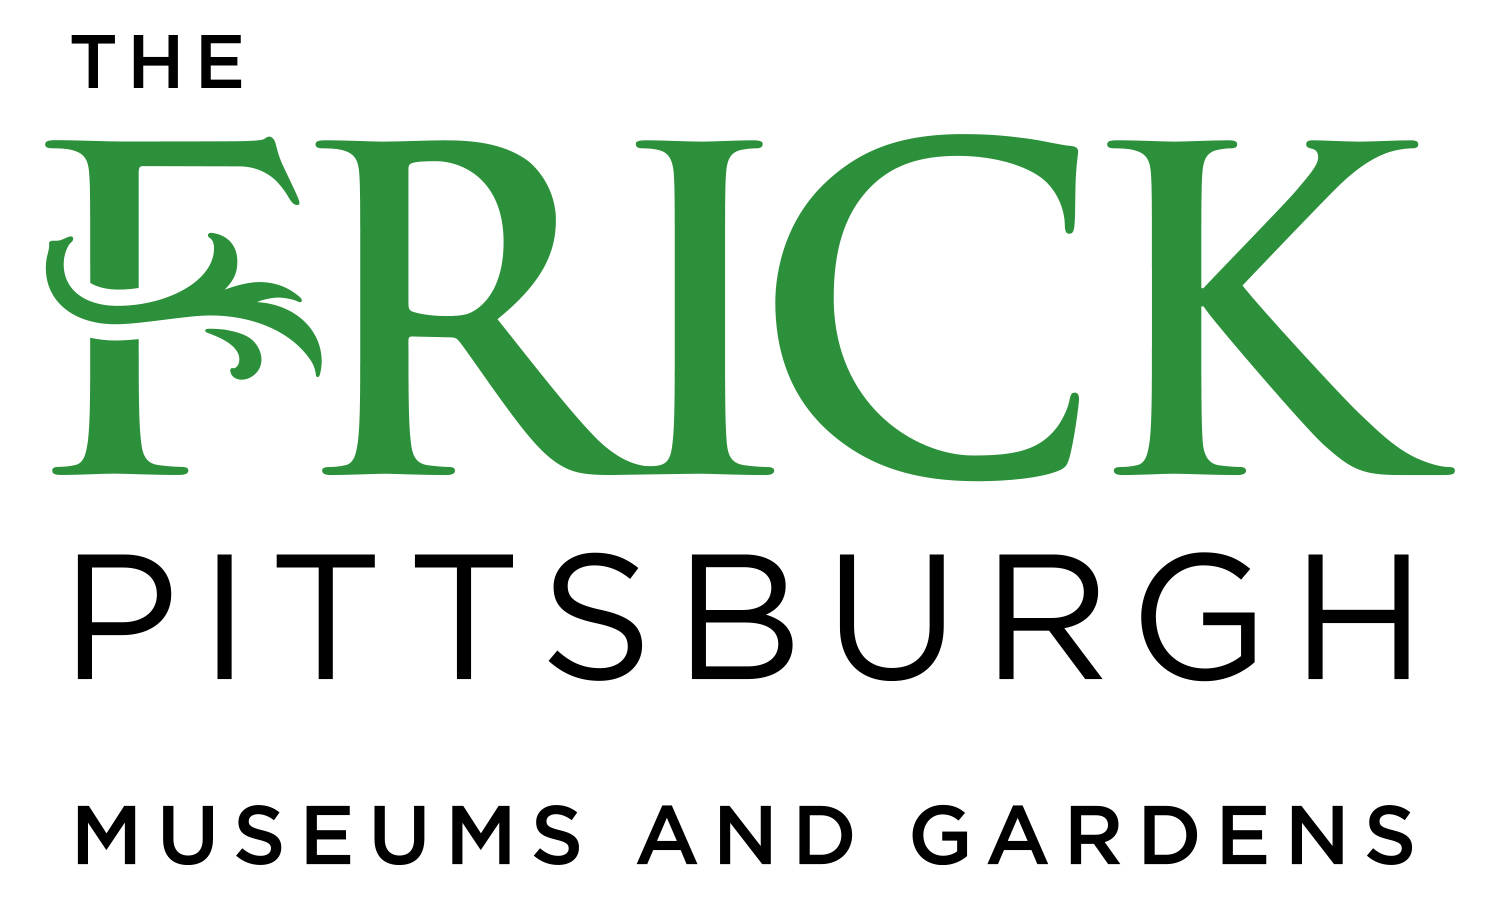 The Frick Pittsburgh logo